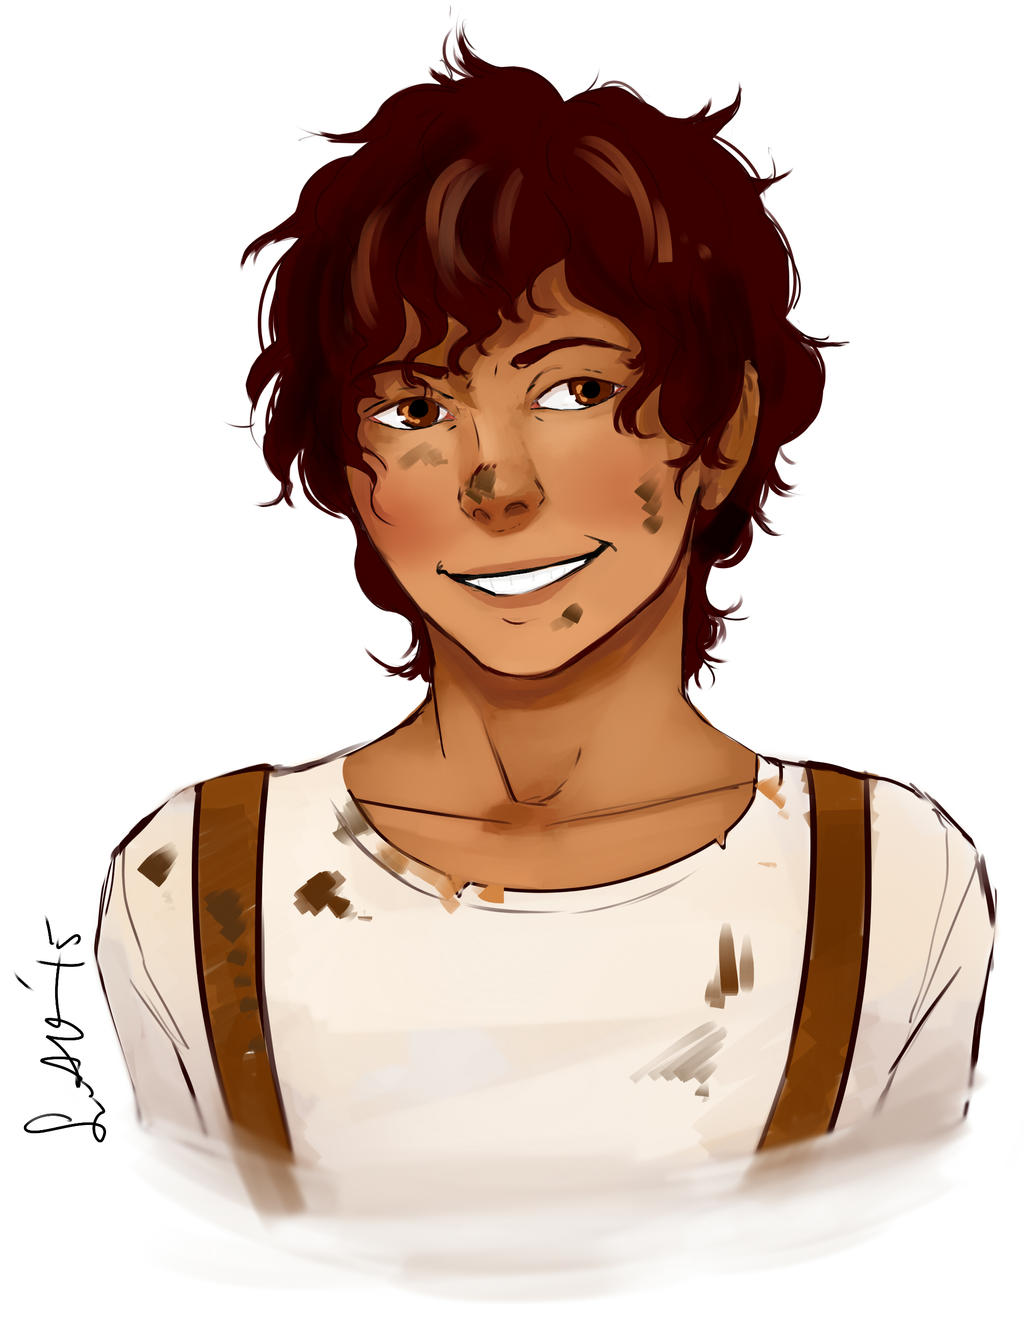 dating leo valdez would include And percy wins 'best boyfriend' award for the time in a row- leo percy jackson winner dating her leo gets it from fandom percy jackson head canon leo valdez.